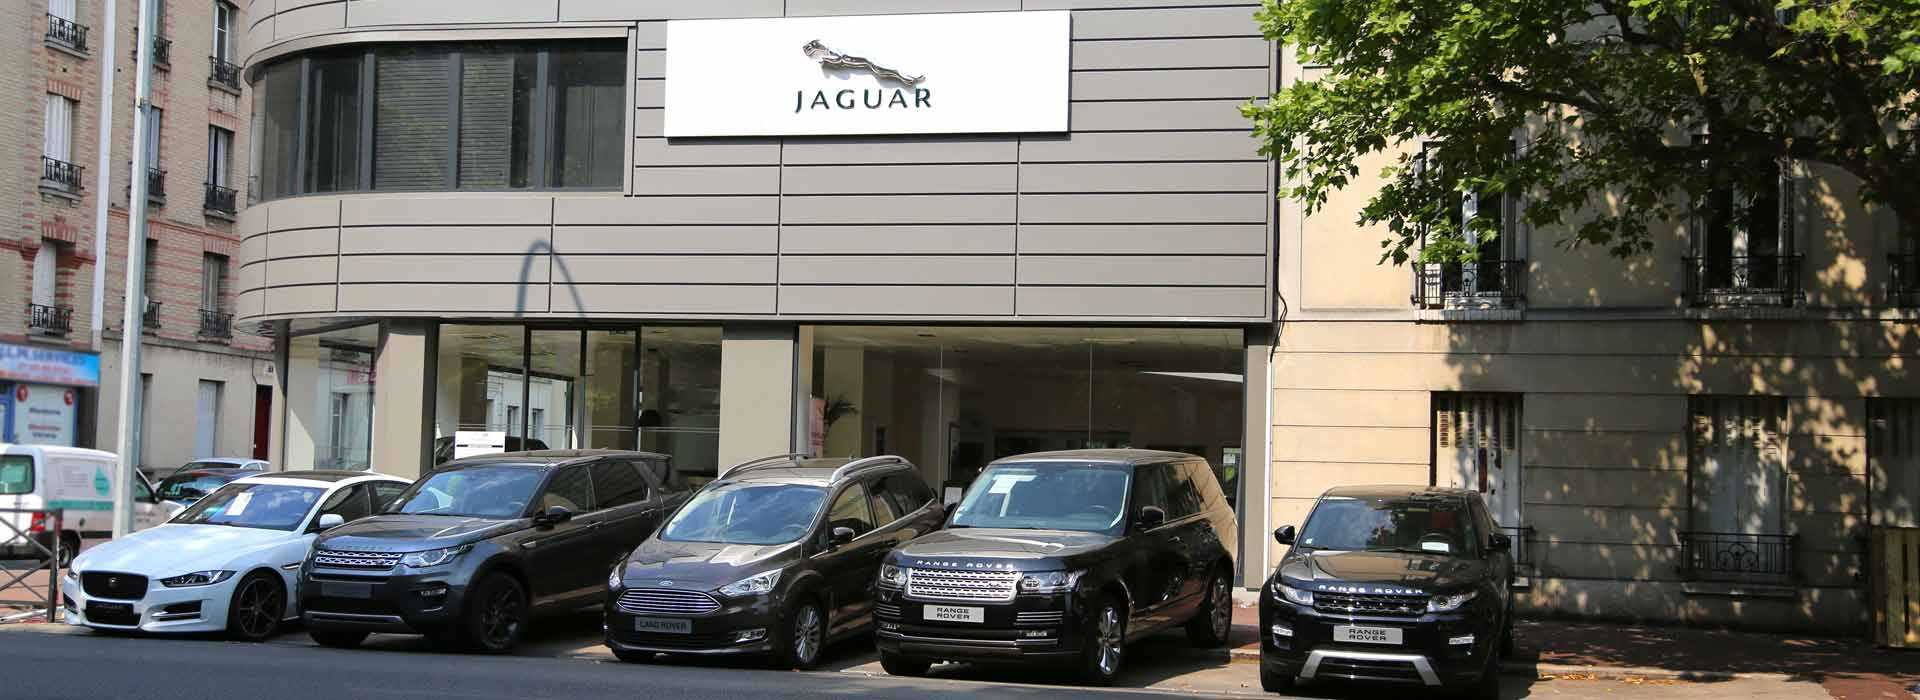 Jaguar paris concessionnaire garage val de marne 94 for Garage automobile saint maur des fosses